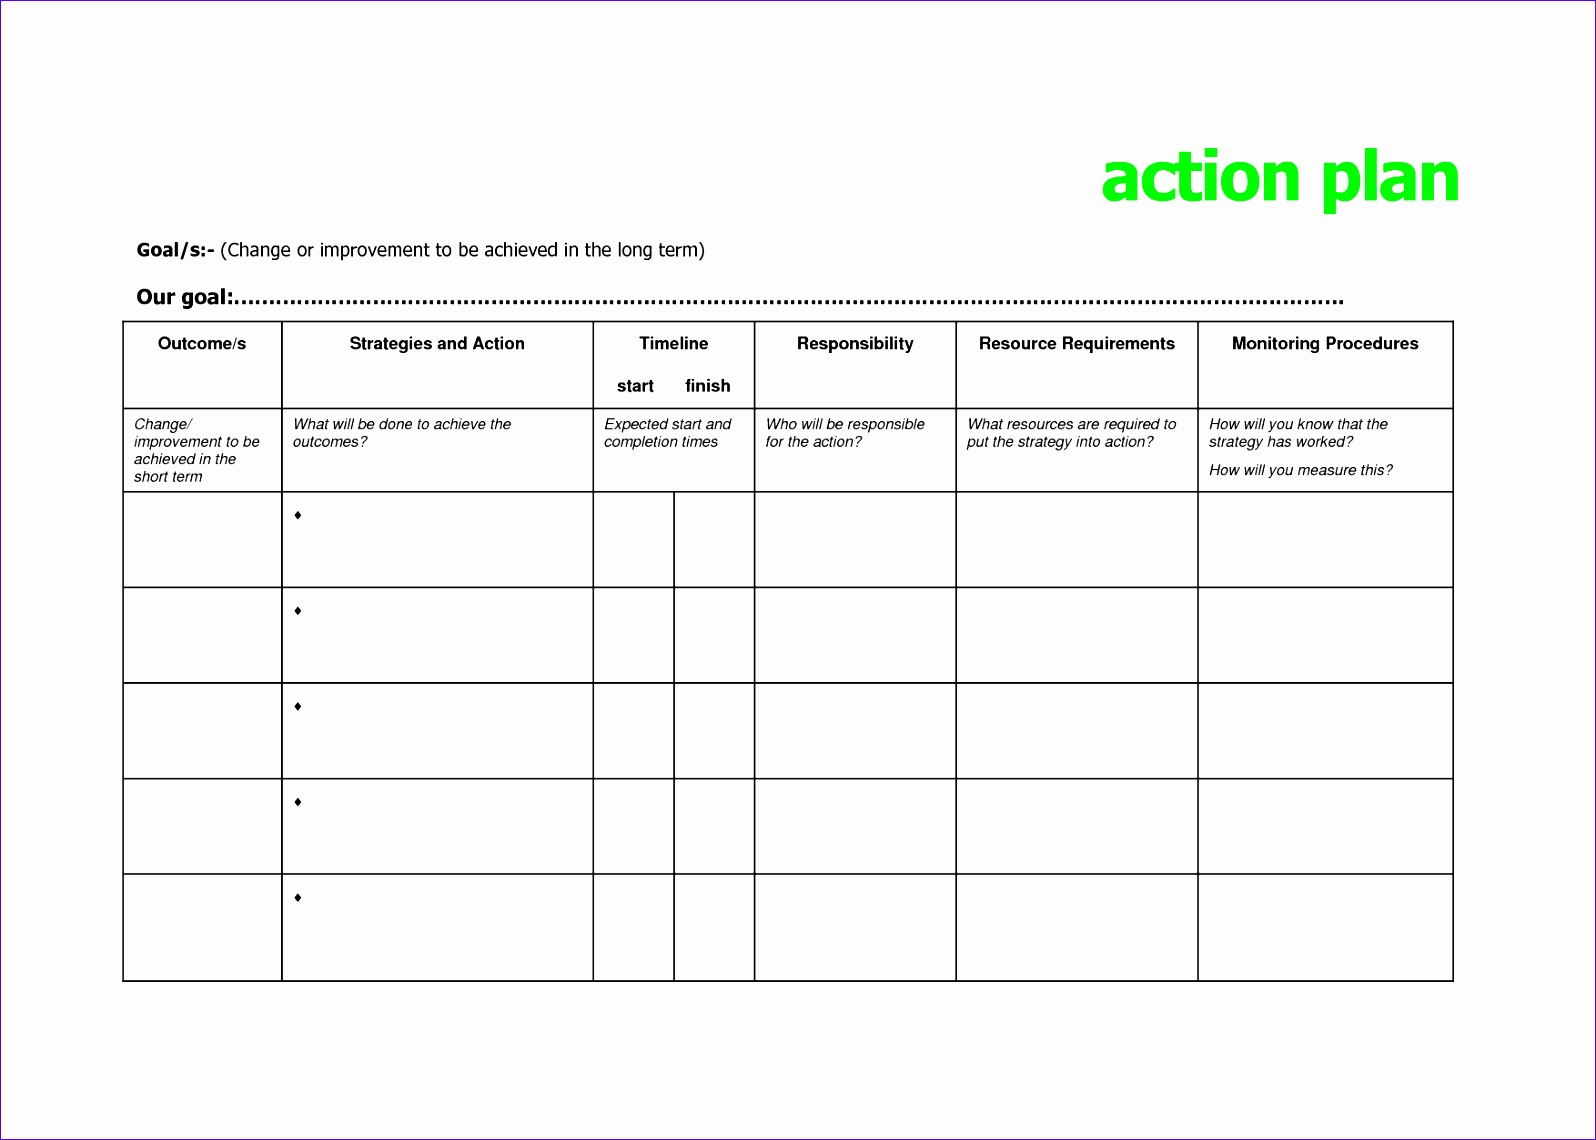 Action Plan Excel Template Zrxws Awesome Doc School Action Plan Template 11  Free Sample 17541240